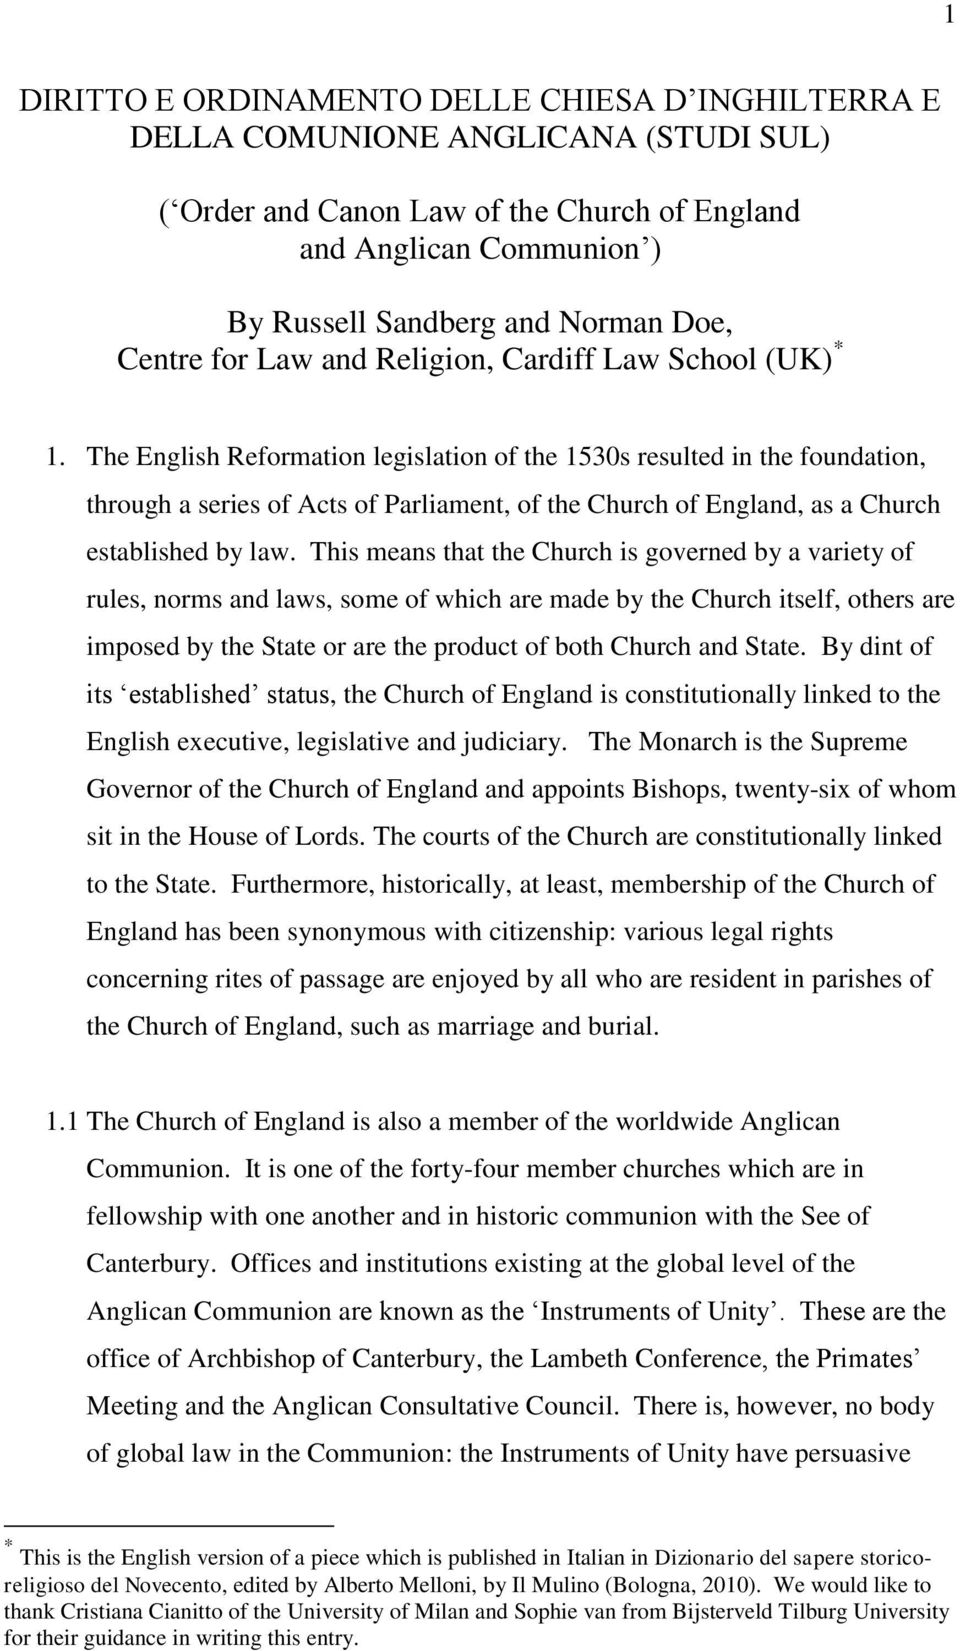 The English Reformation legislation of the 1530s resulted in the foundation, through a series of Acts of Parliament, of the Church of England, as a Church established by law.